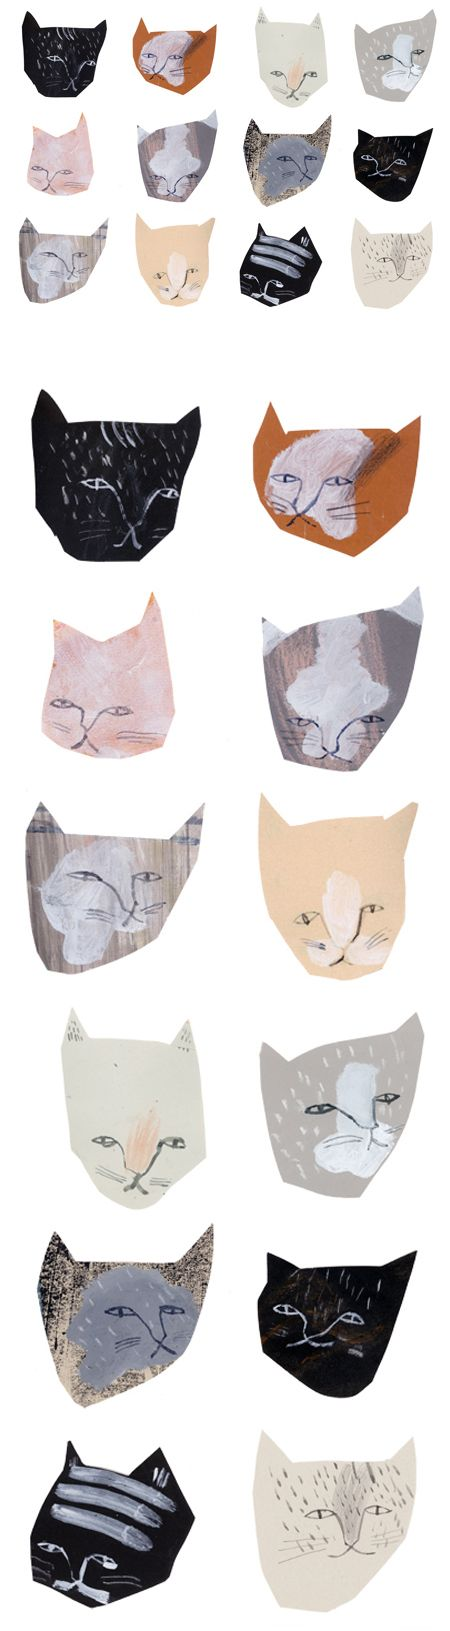 25 best ideas about cat face drawing on pinterest cat. Black Bedroom Furniture Sets. Home Design Ideas